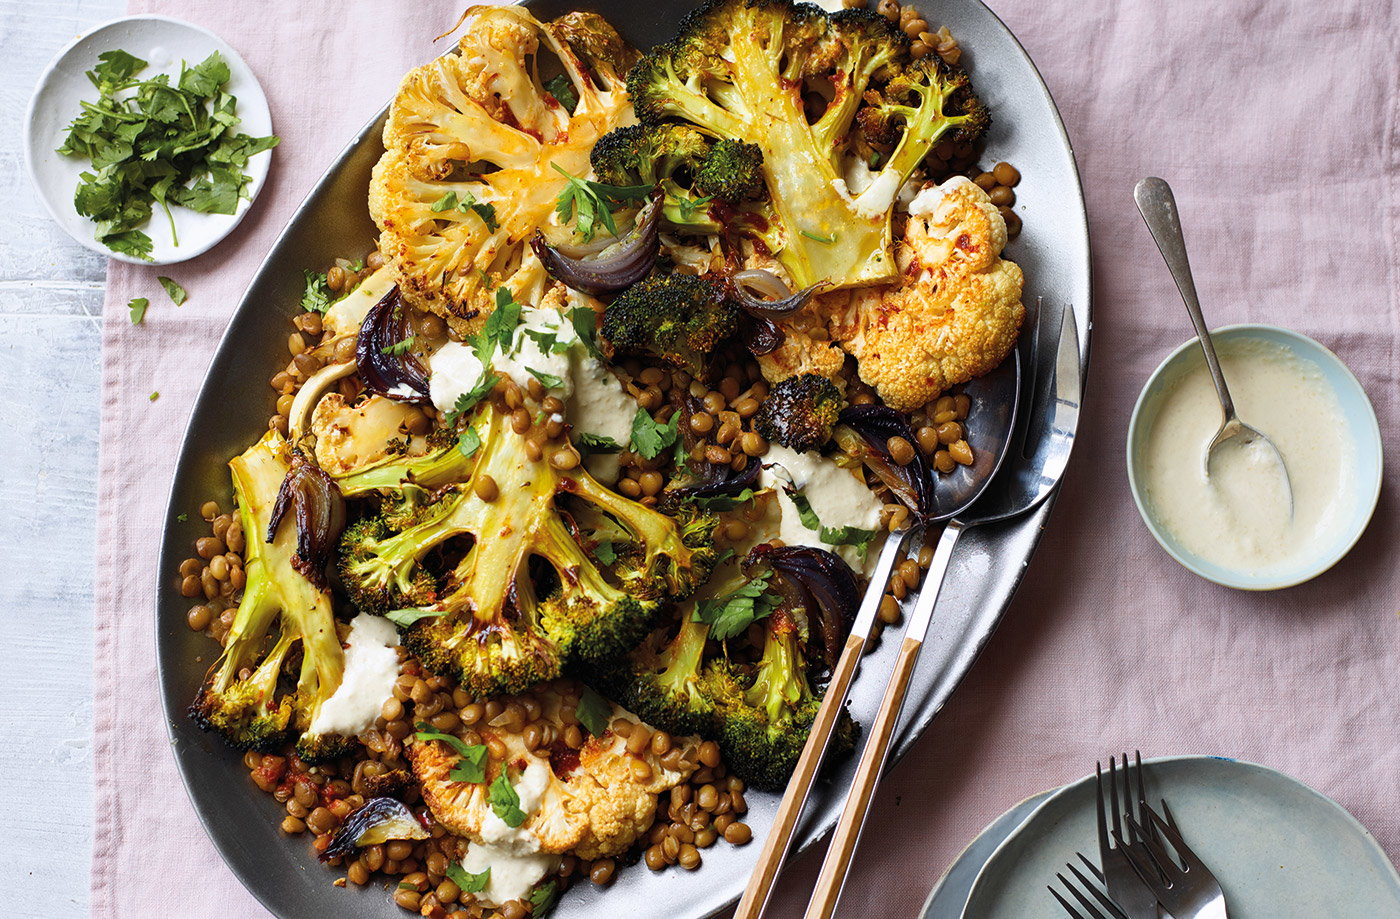 Roasted broccoli and cauliflower with harissa lentils recipe